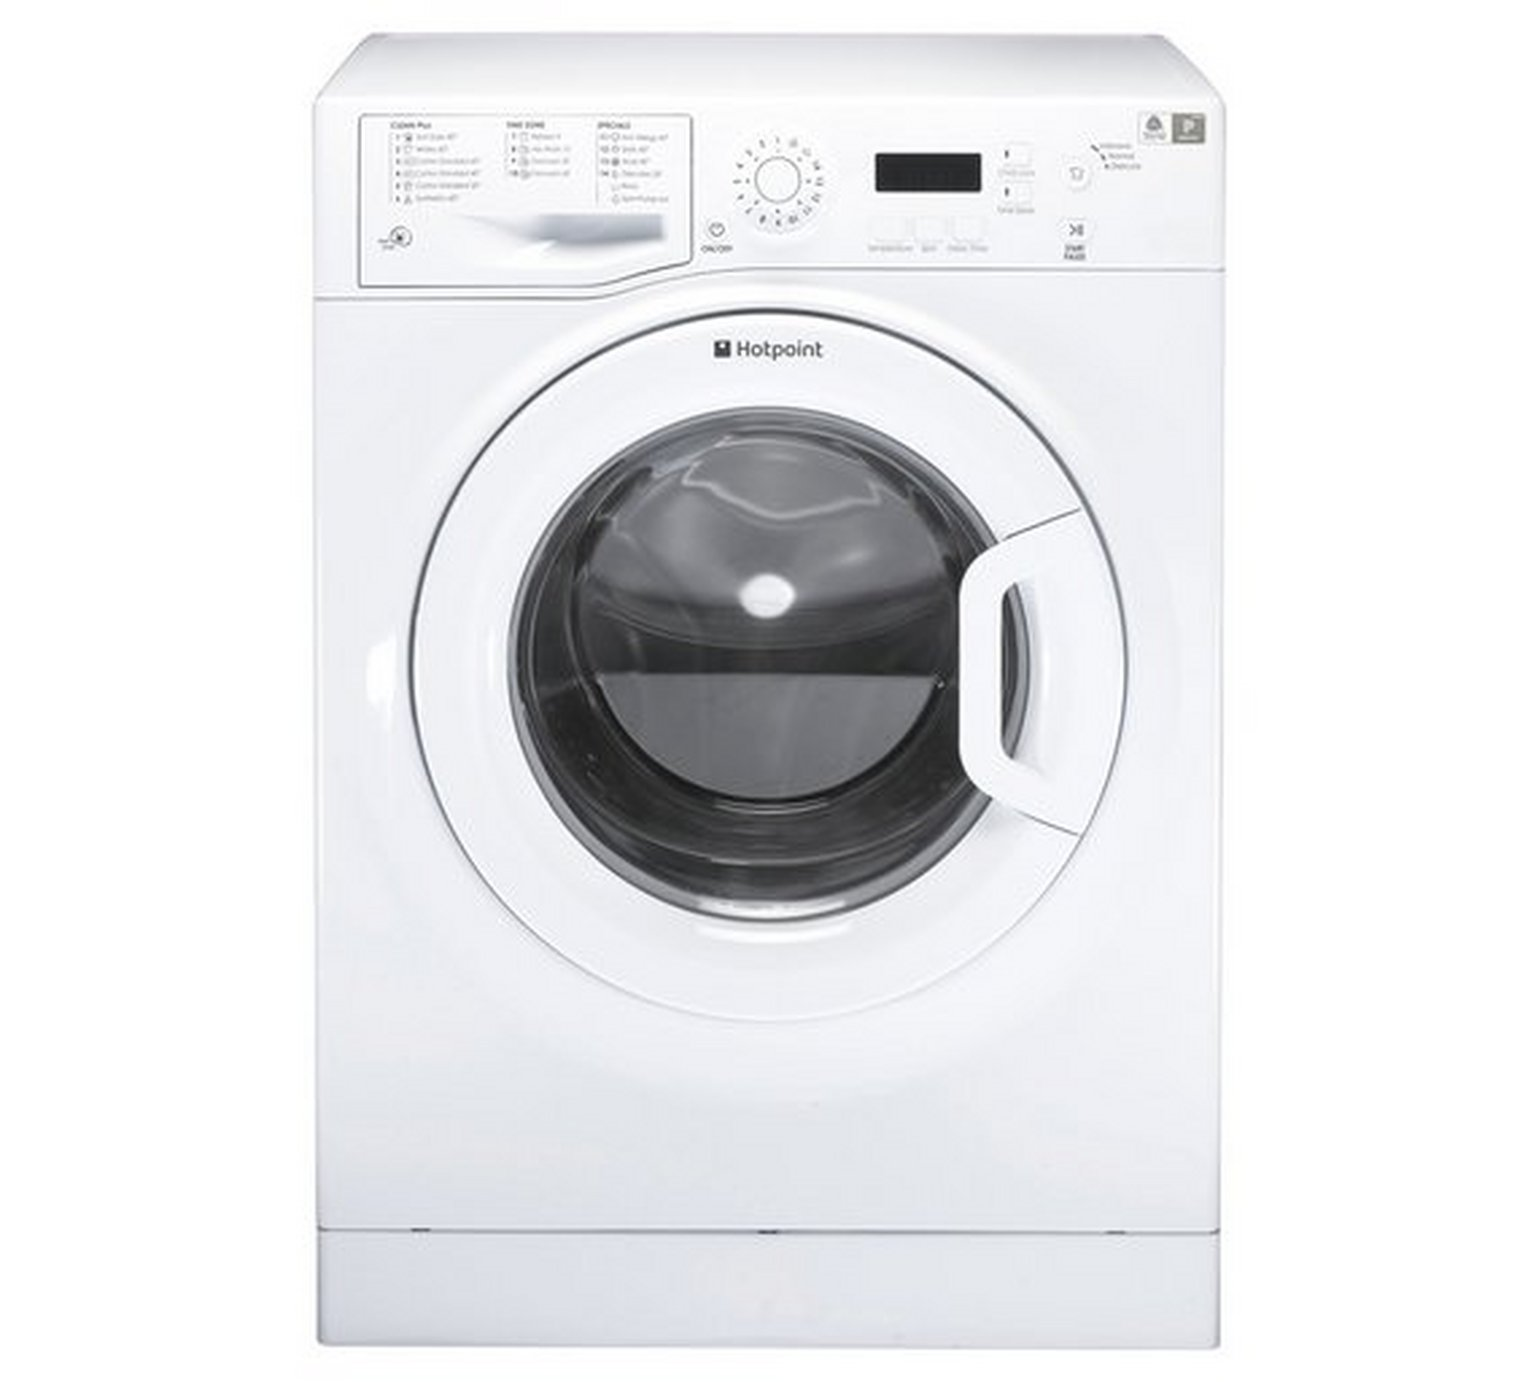 Hotpoint WMXTF742P 7KG 1400 Spin Washing Machine - White by Hotpoint 365/3739